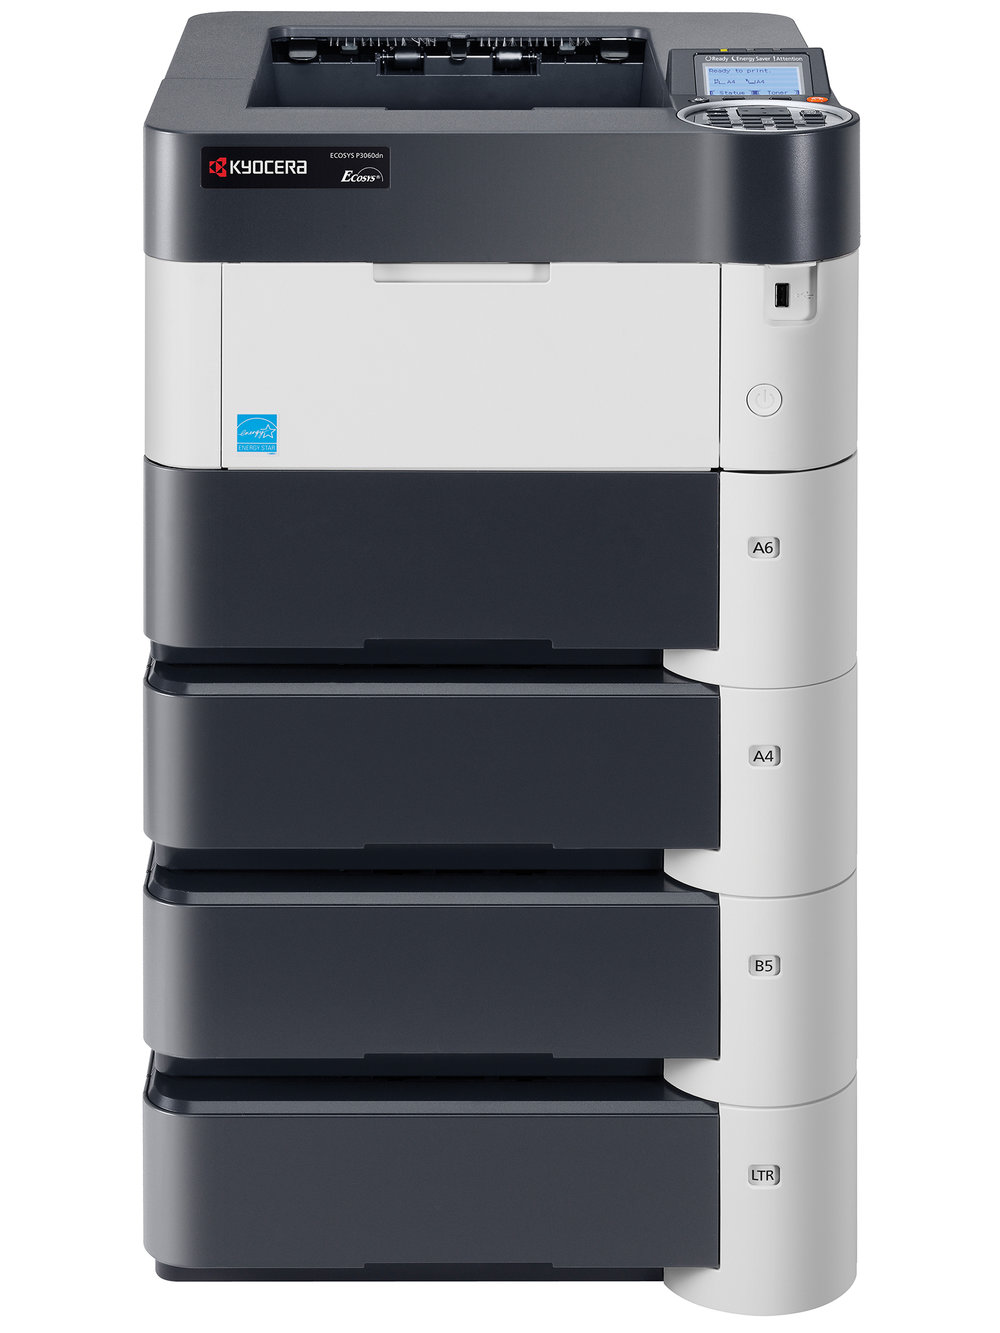 The Ecosys P3060dn with x 3 optional paper trays